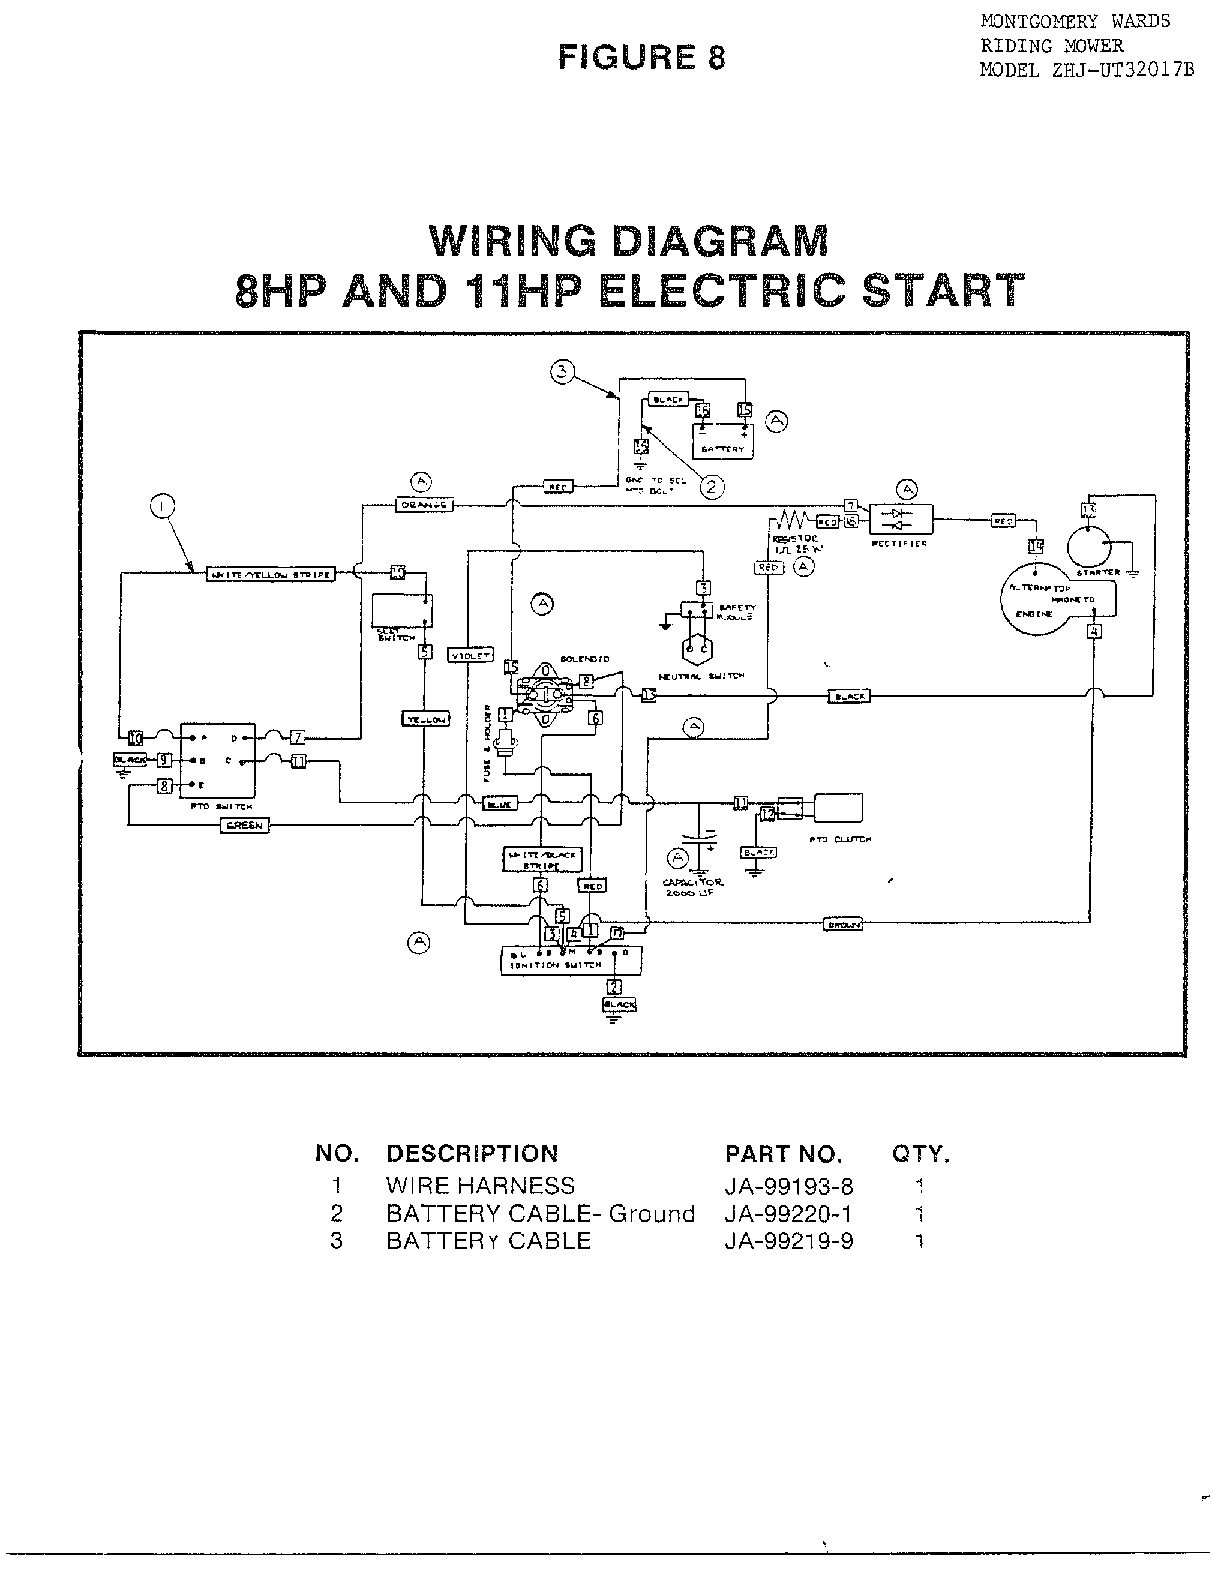 New Briggs And Stratton 16 5 Hp Wiring Diagram Mercury portals Org